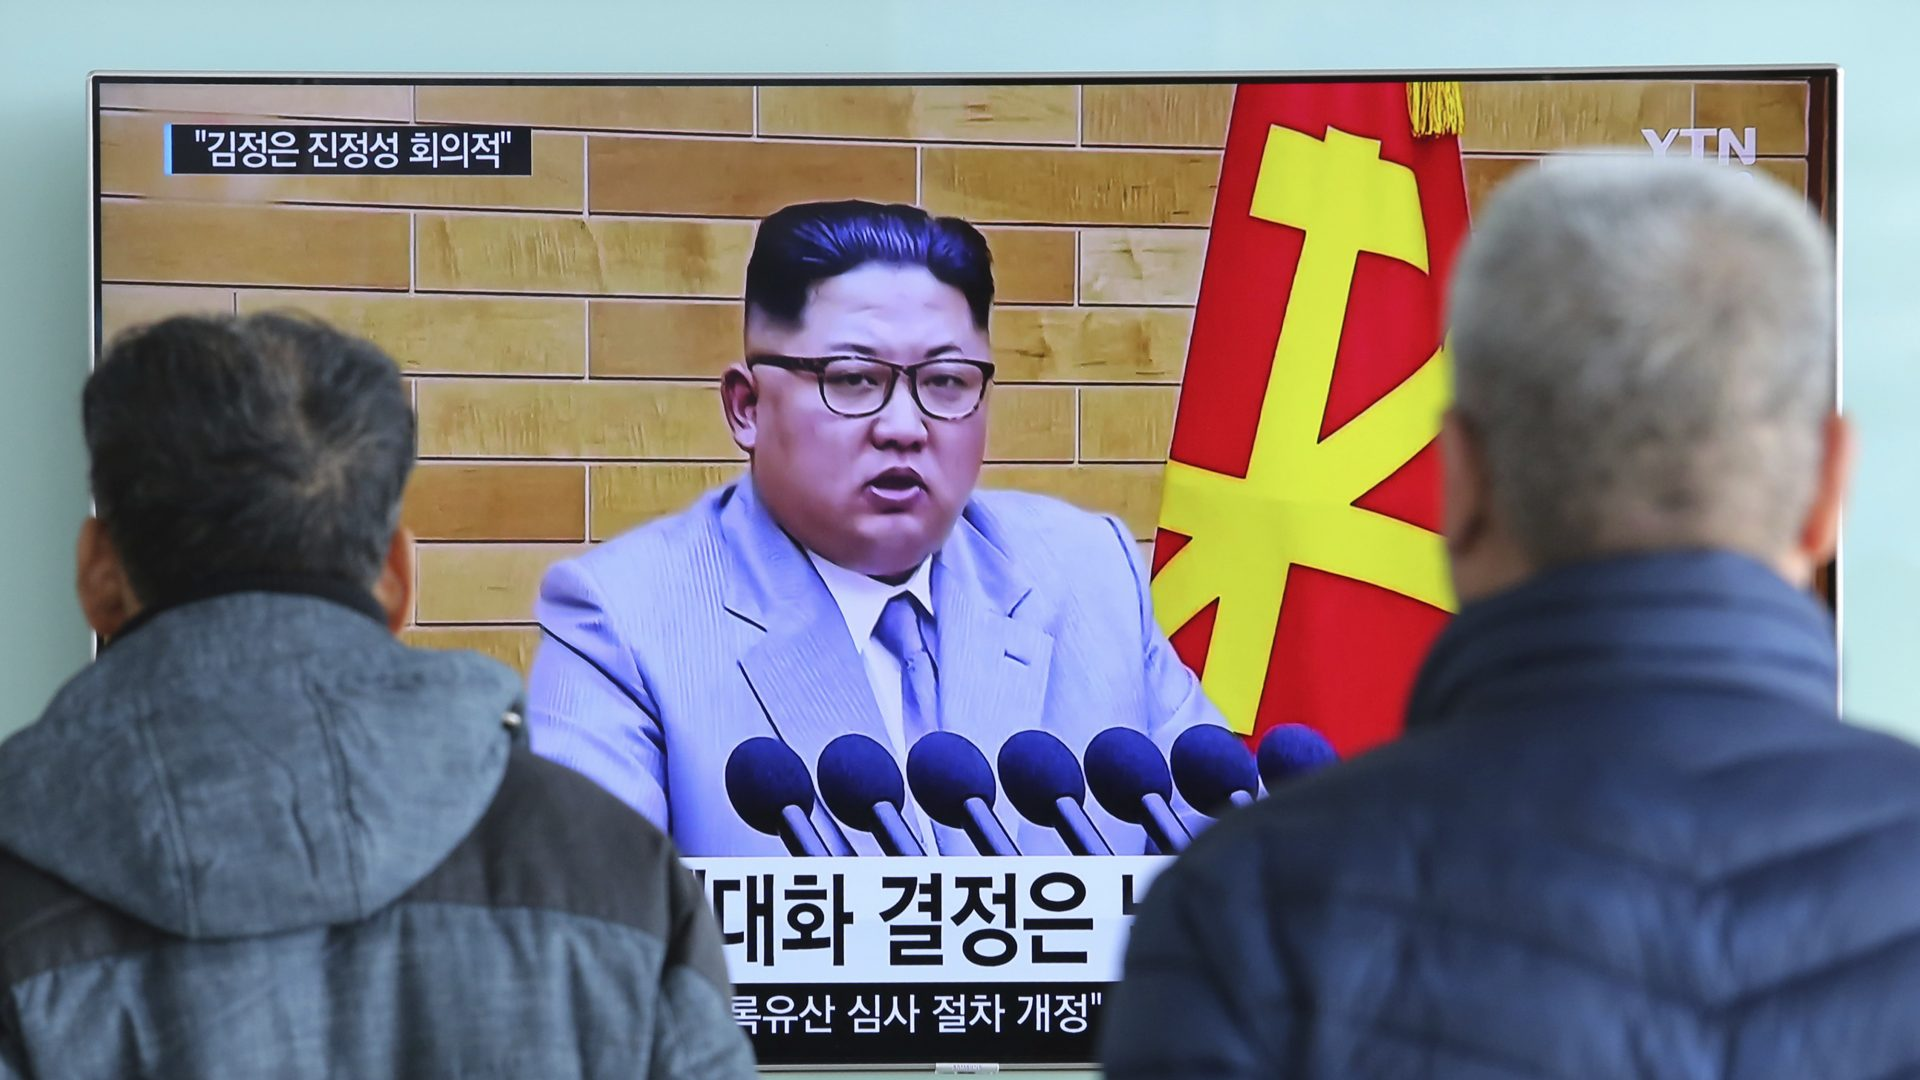 North Korea said leader Kim Jong Un reopened the channel earlier on Wednesday (Ahn Young-joon/AP)